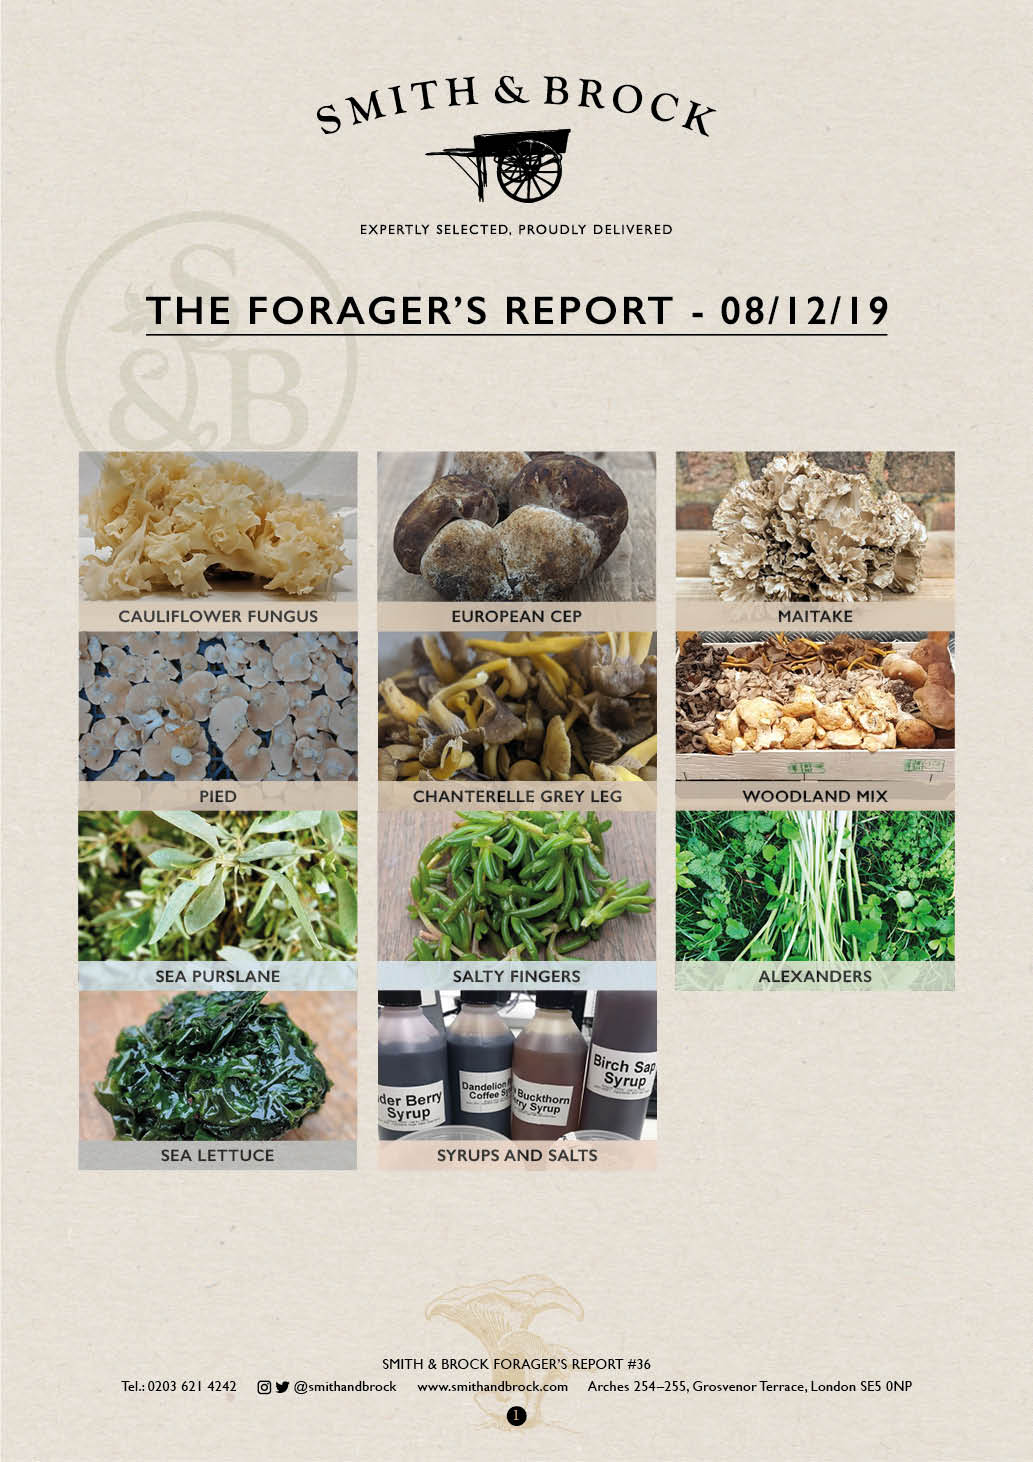 Smith&Brock Foraged Products Report 08 Dec 2019 36